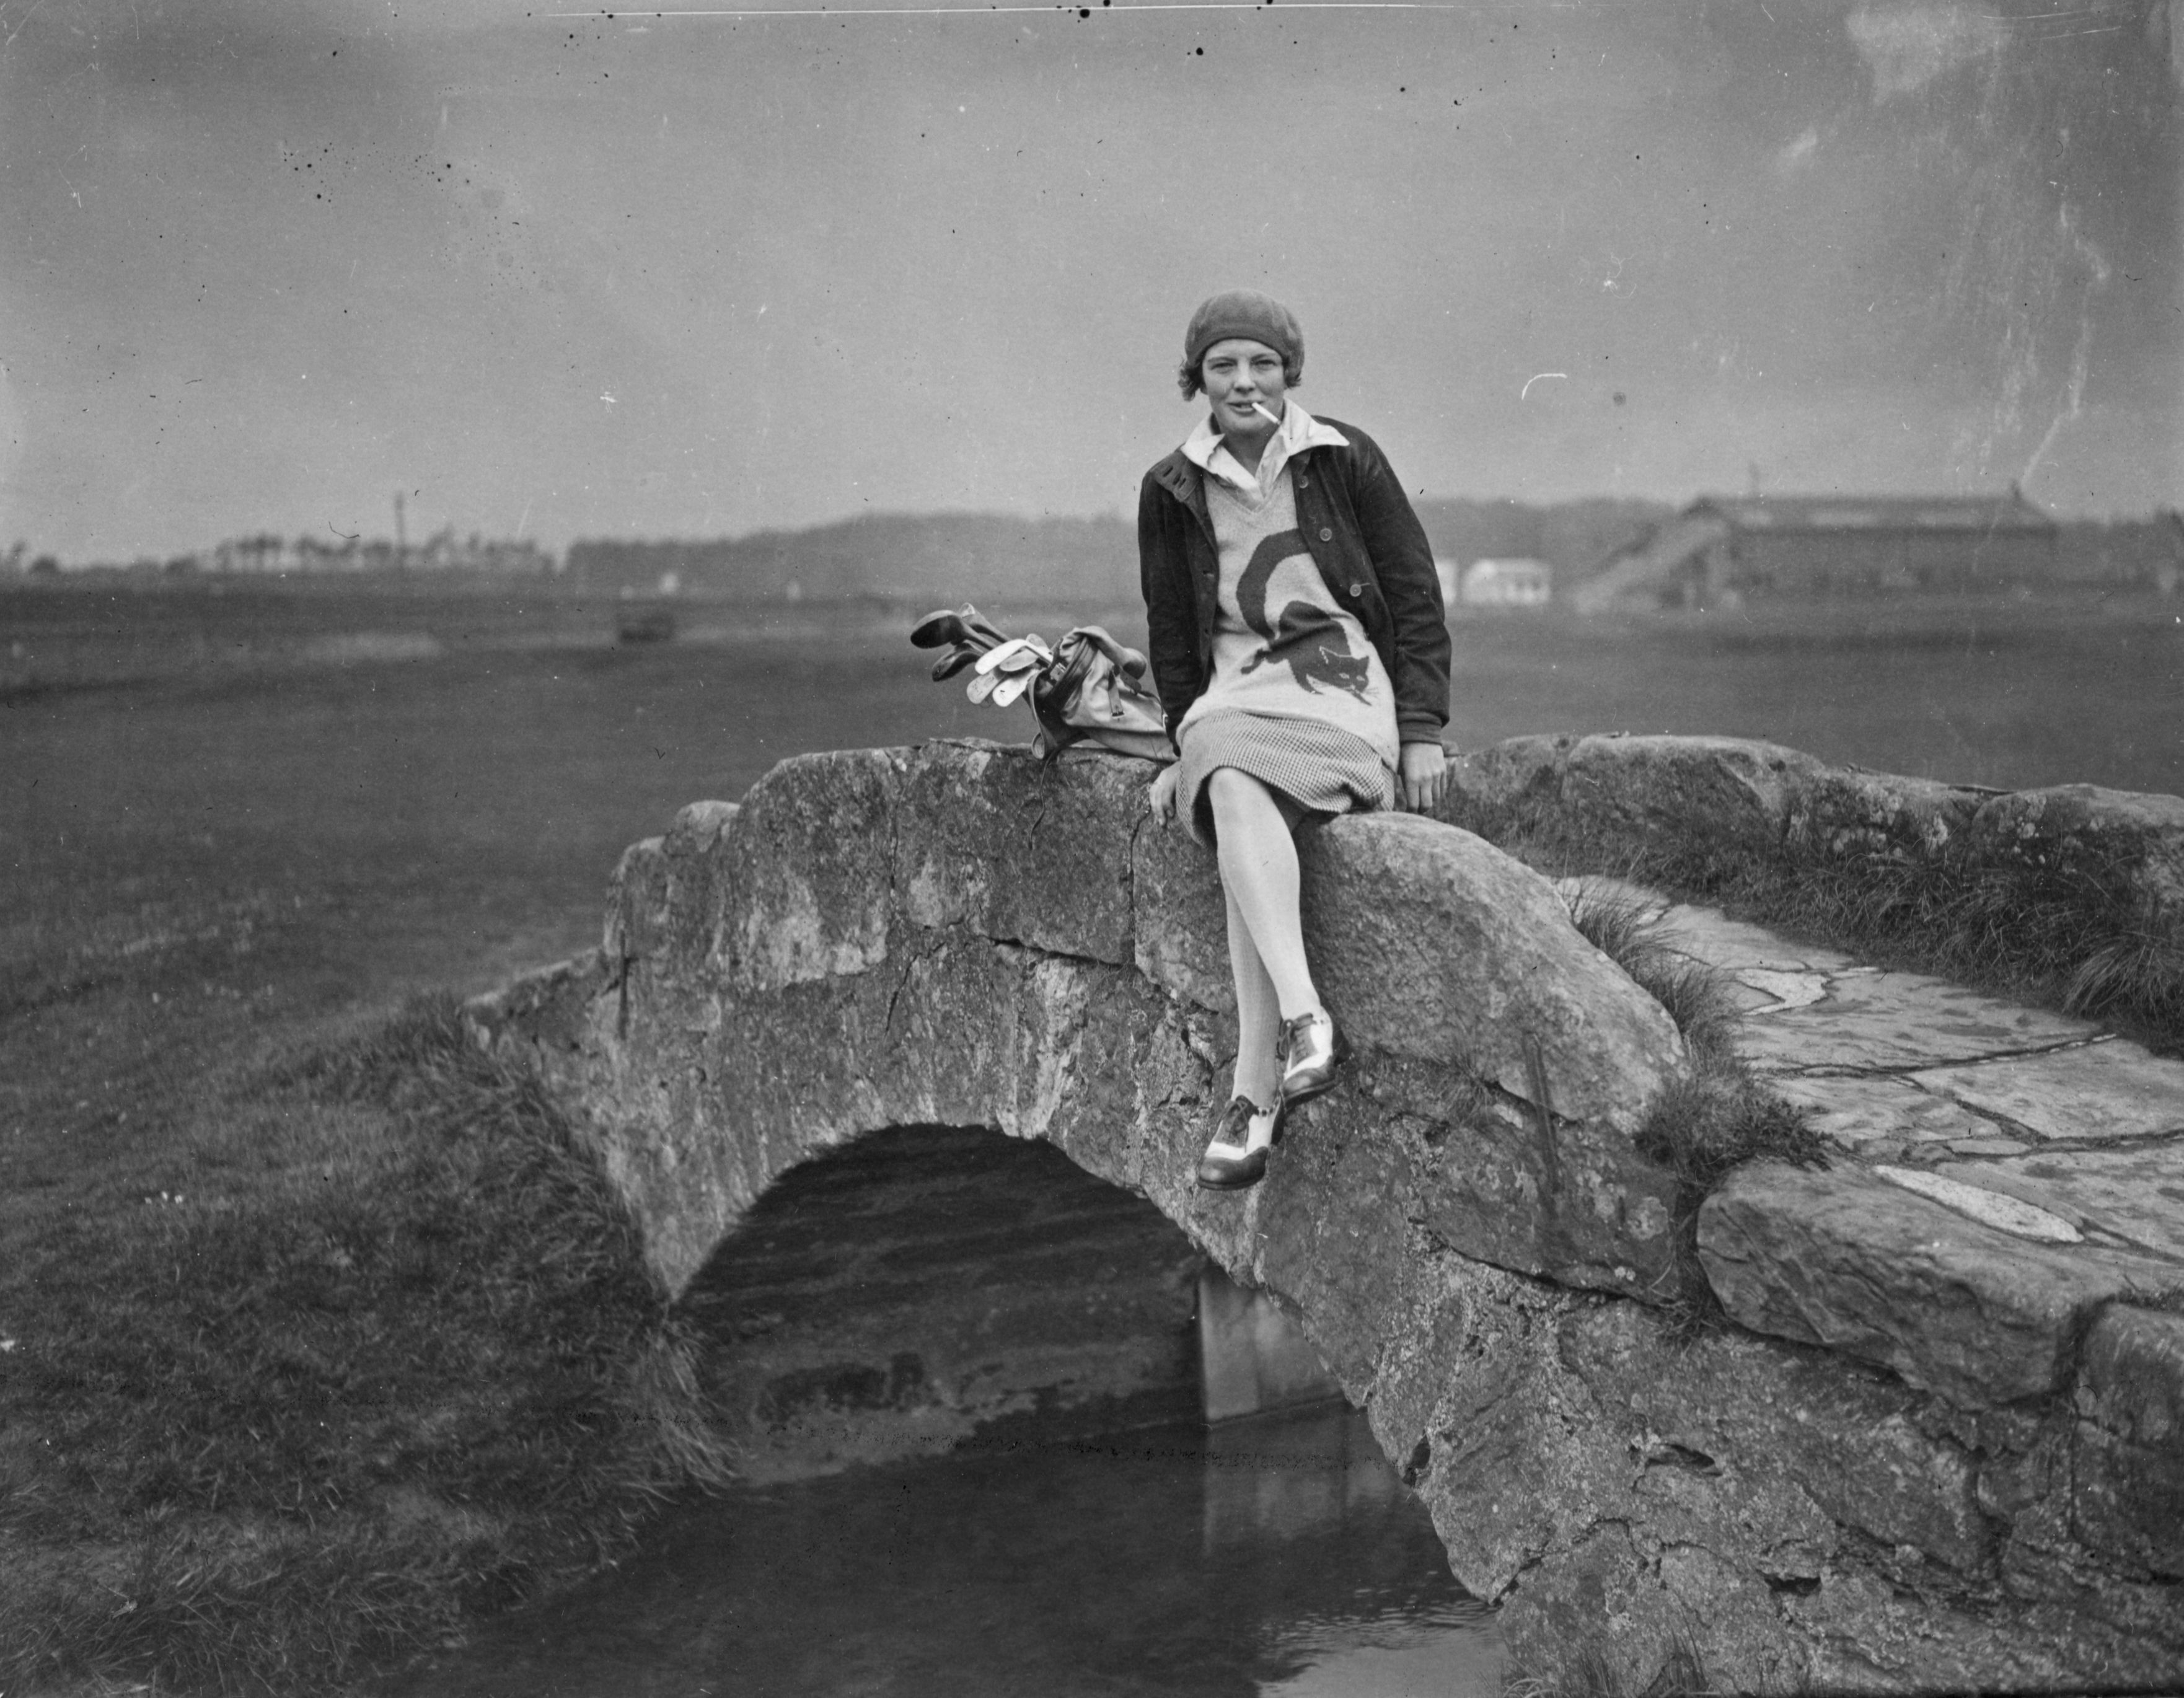 Competitor Miss Margaret Hamilton sitting on Swilcan Bridge at St Andrews golf course during the Ladies' British Open Amateur Championship in 1929